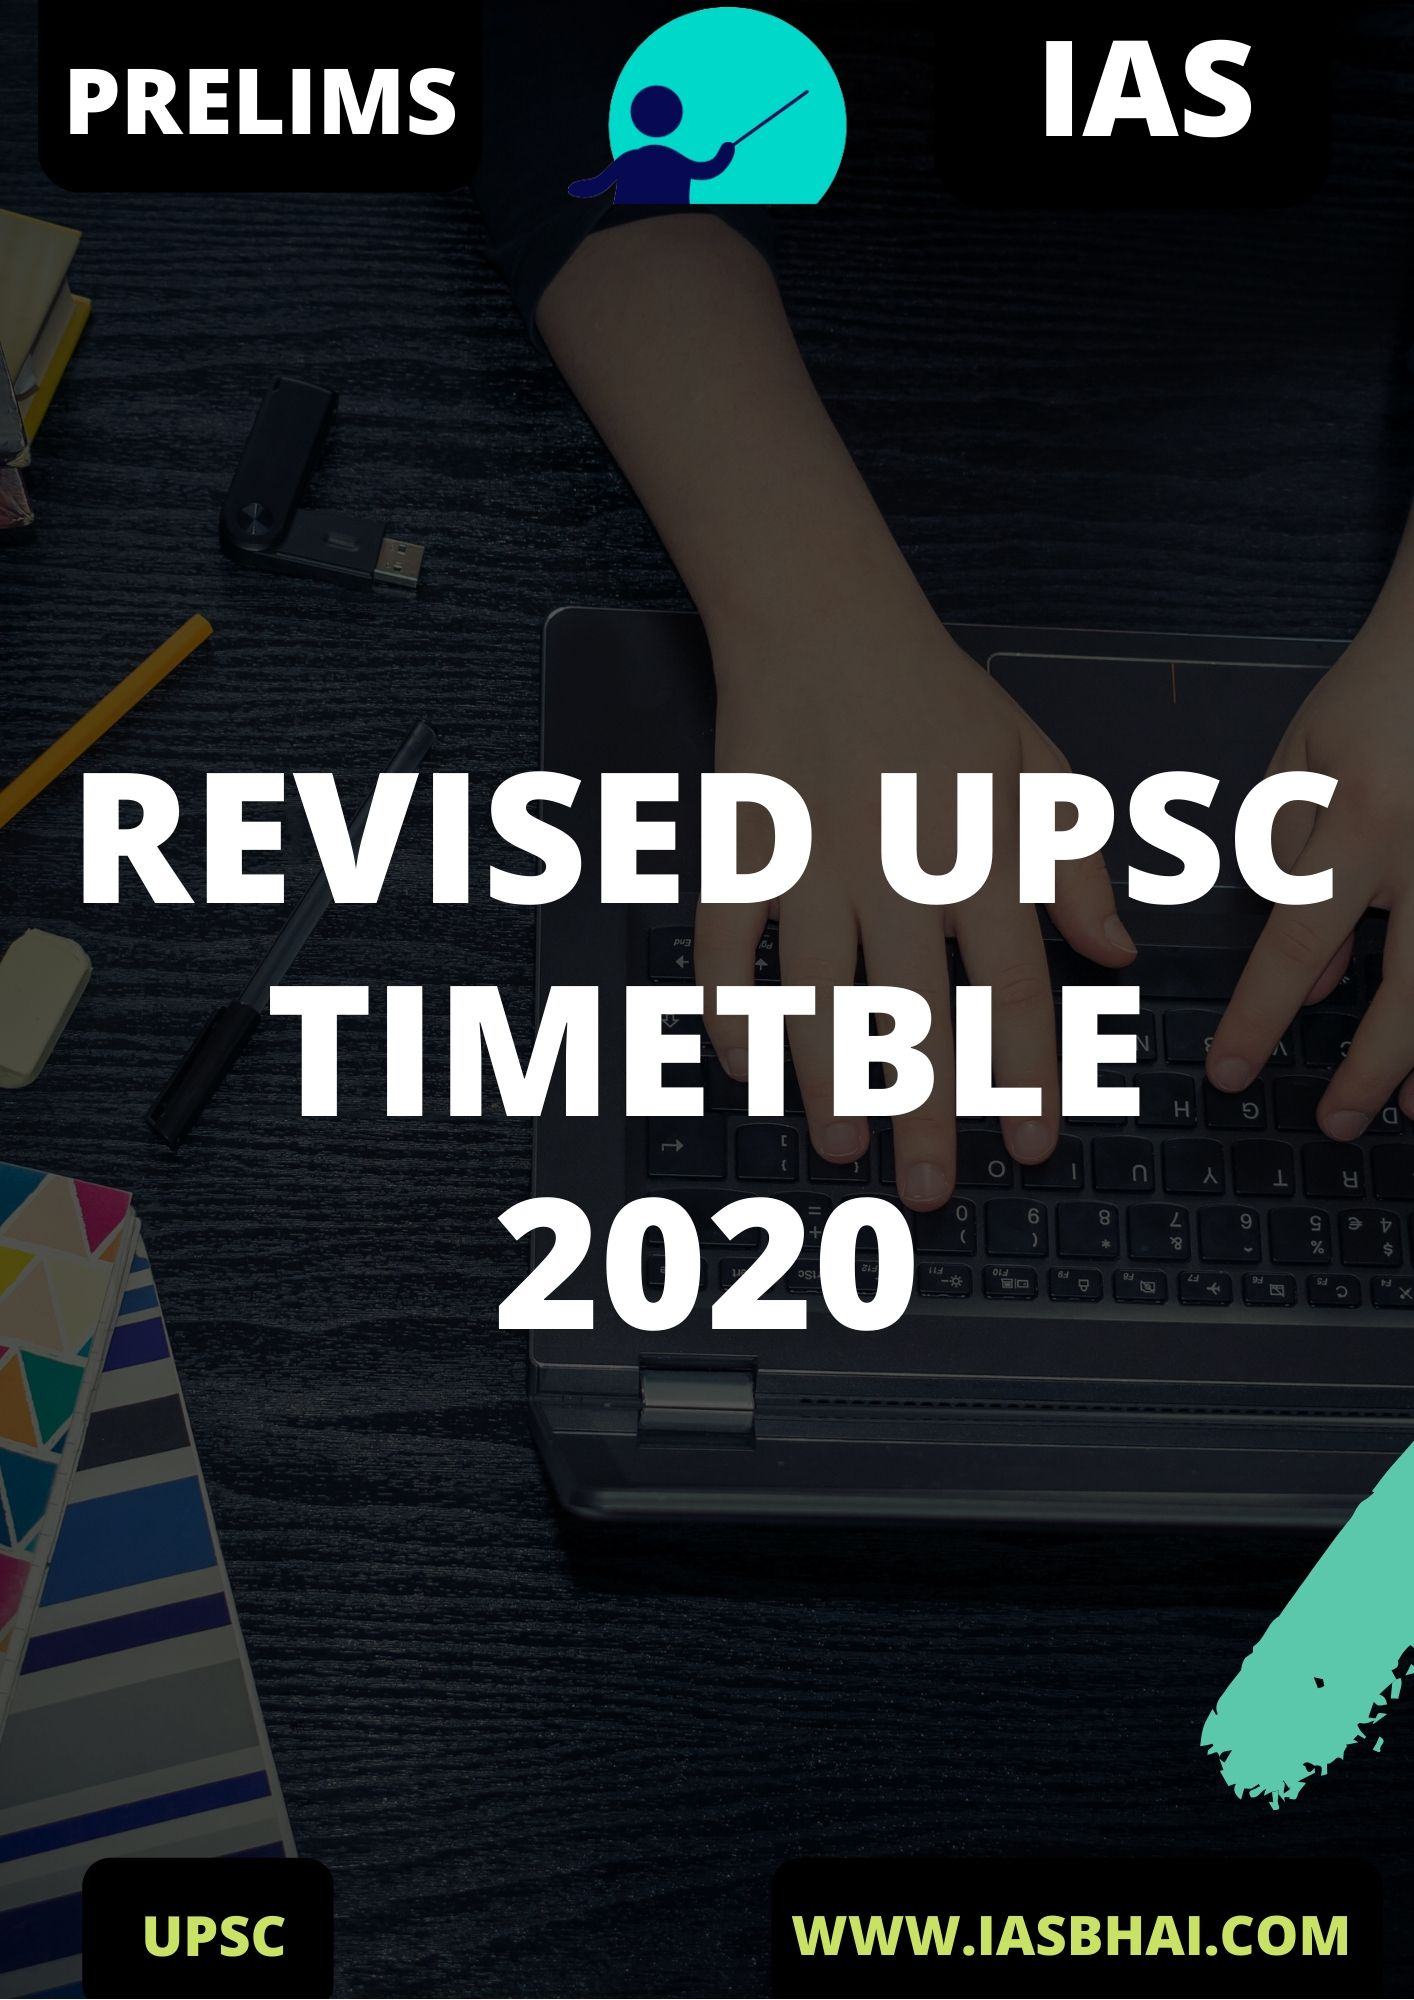 REVISED UPSC TIMETBLE 2020